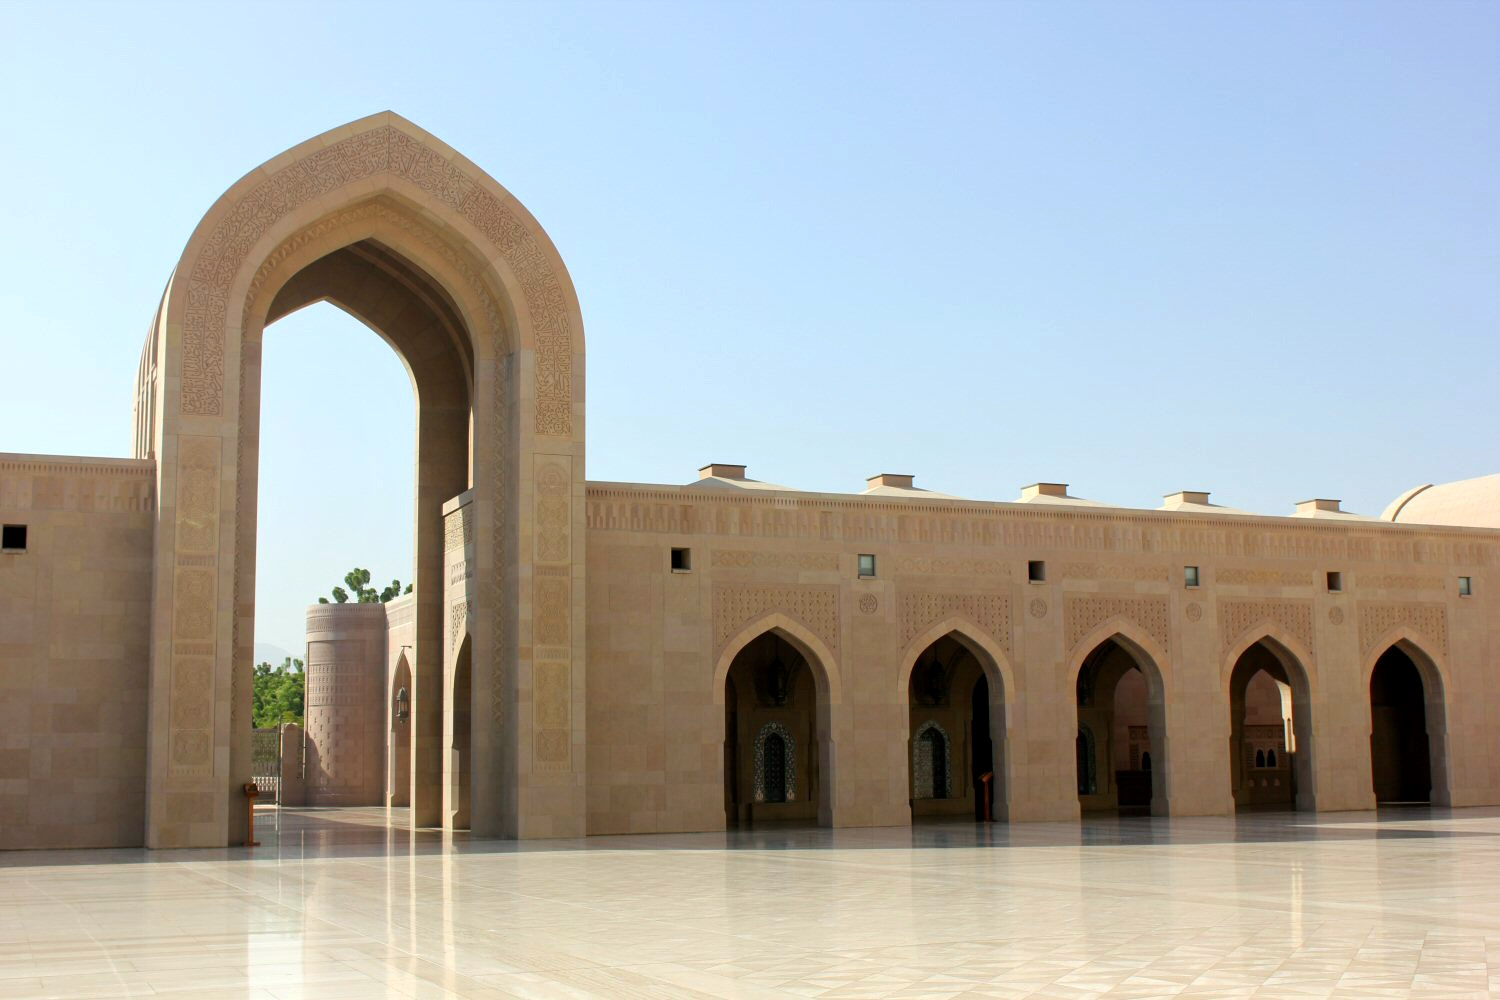 A view of an archway and sand coloured building at the Sultan Qaboos Grand Mosque in Muscat Oman - the beautiful architecture is one of my nine reasons to visit Oman with kids